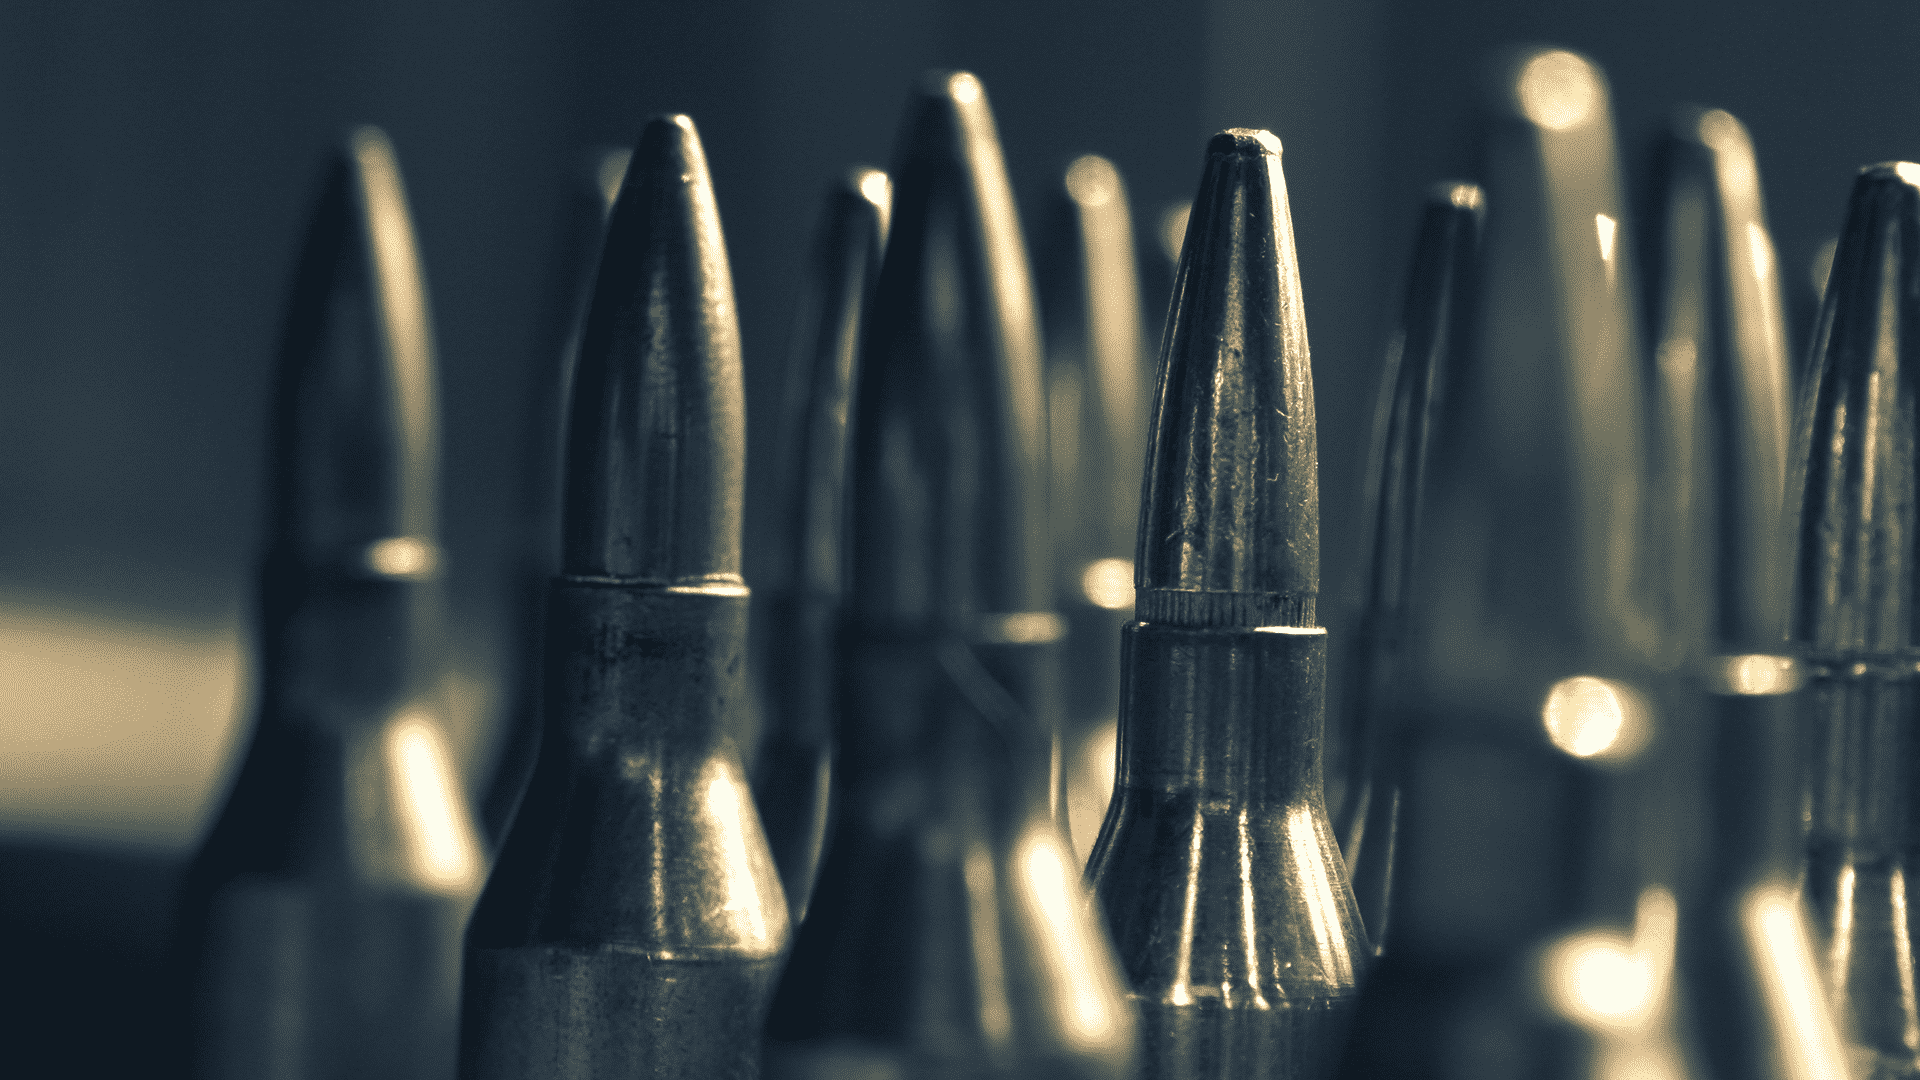 Rifle rounds.